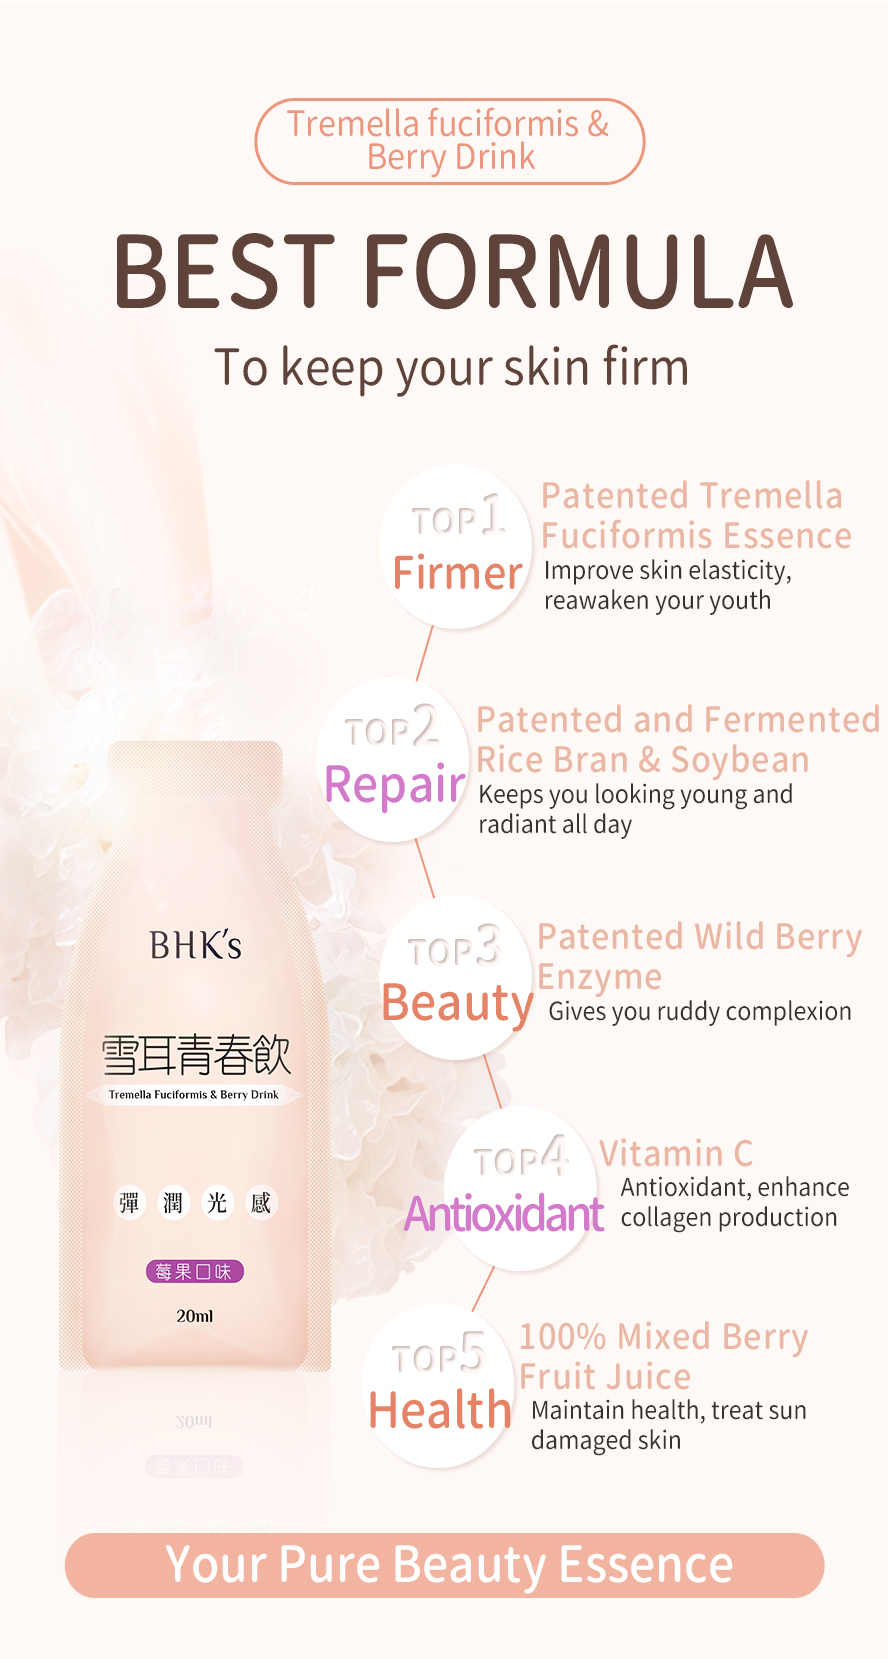 BHKs Tremella Fuciformis Drink contains patented tremella fuciformis extract and fermented black chokeberry juice that makes skin bouncy.